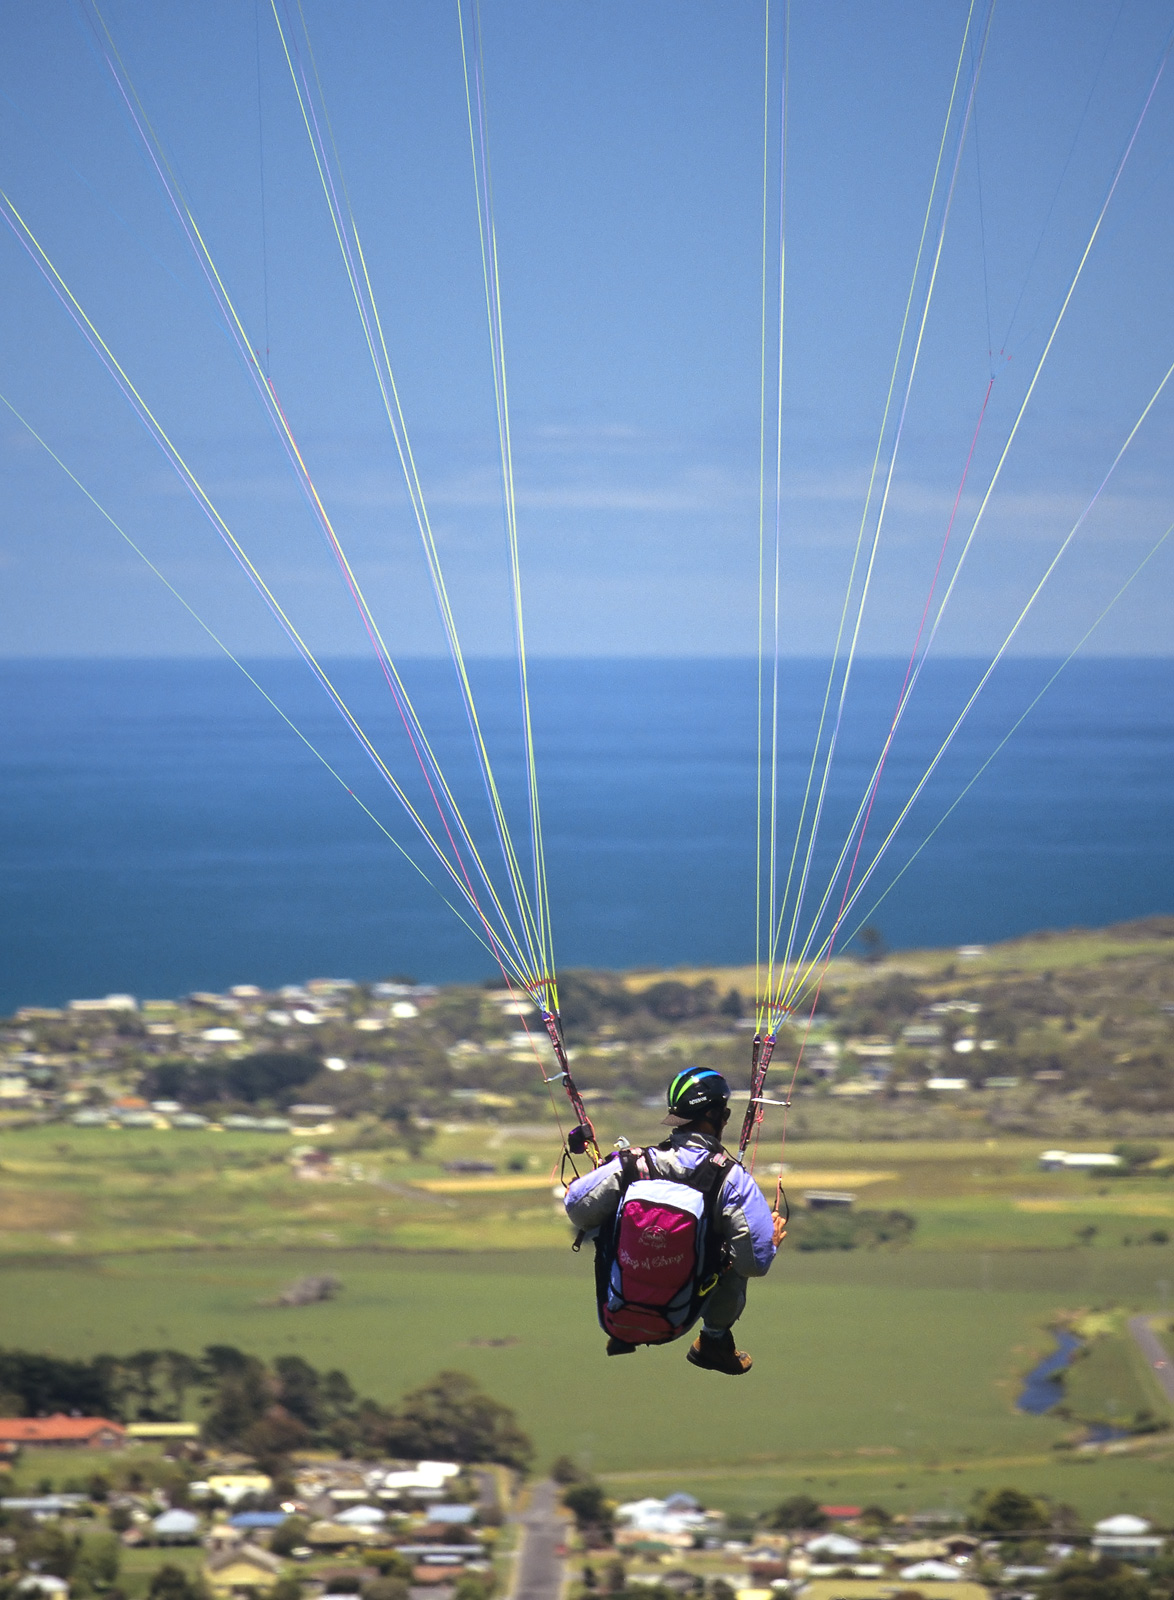 Suspended, Marineo, Great Ocean Road, Victoria, Apollo Bay, cliffs, paragliders, pilots, suspended, hanging, updraft, cliff, photo